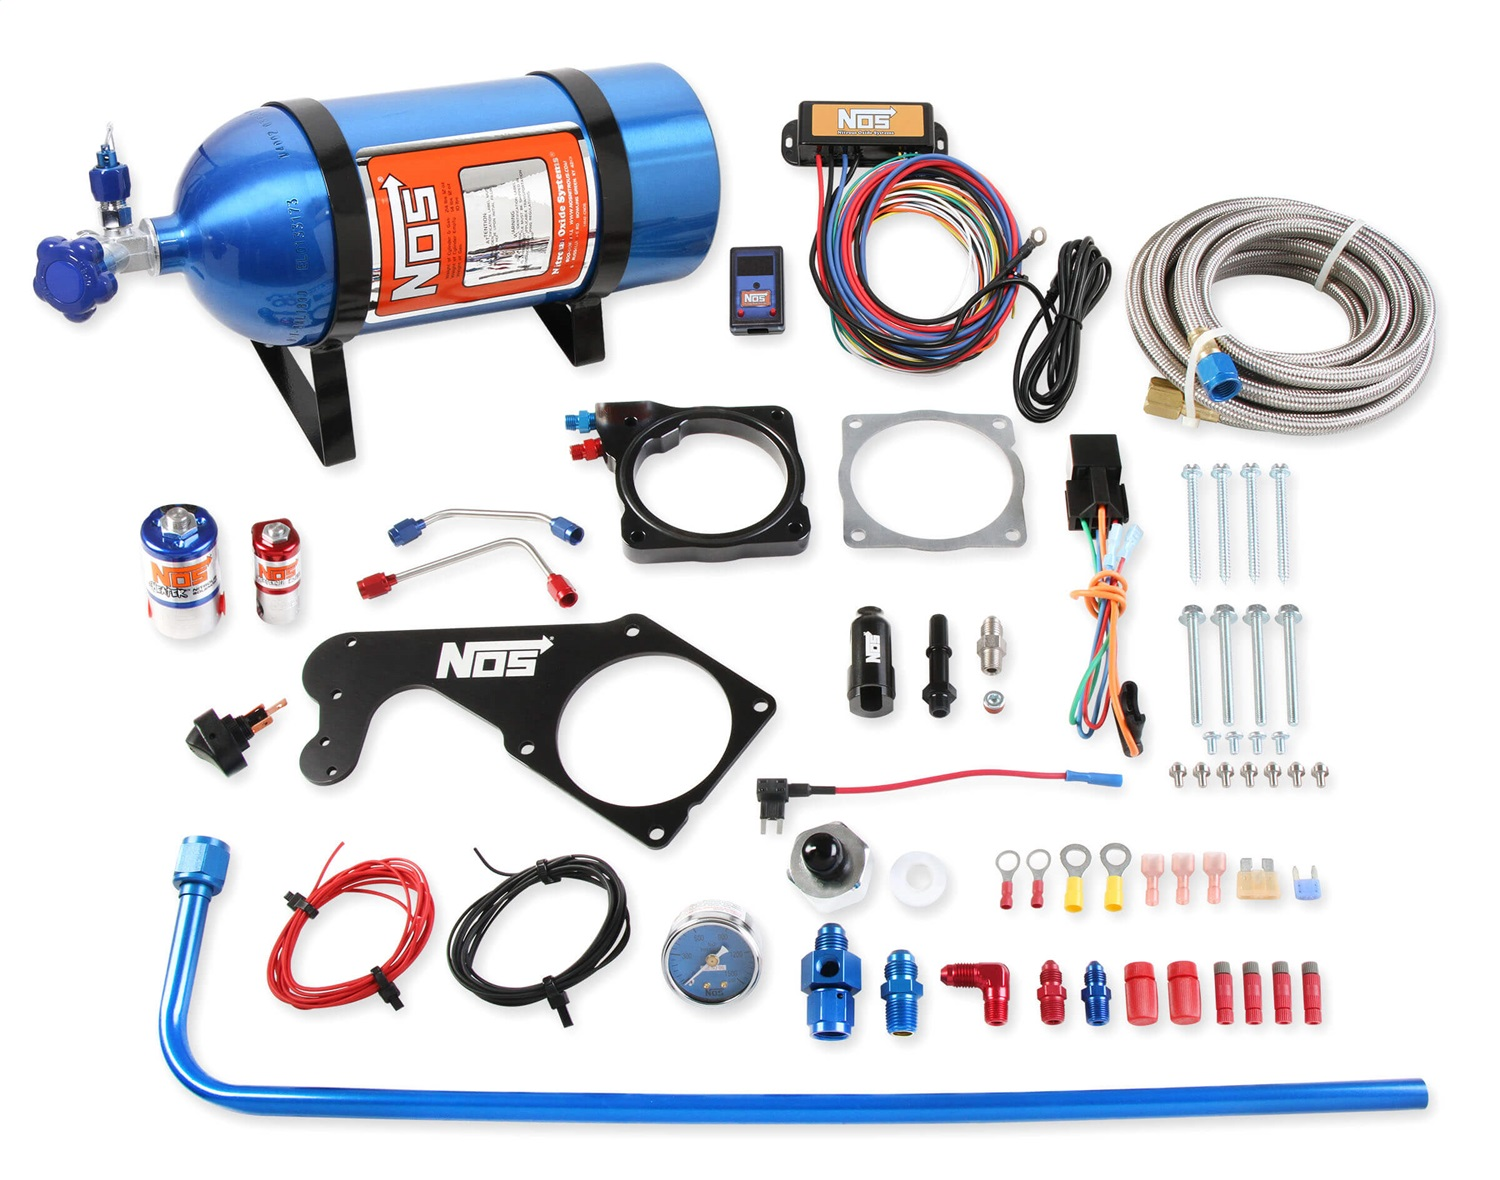 hight resolution of nos 05184nos complete nitrous system 250 rwhp max incl nitrousnos 05184nos complete nitrous system